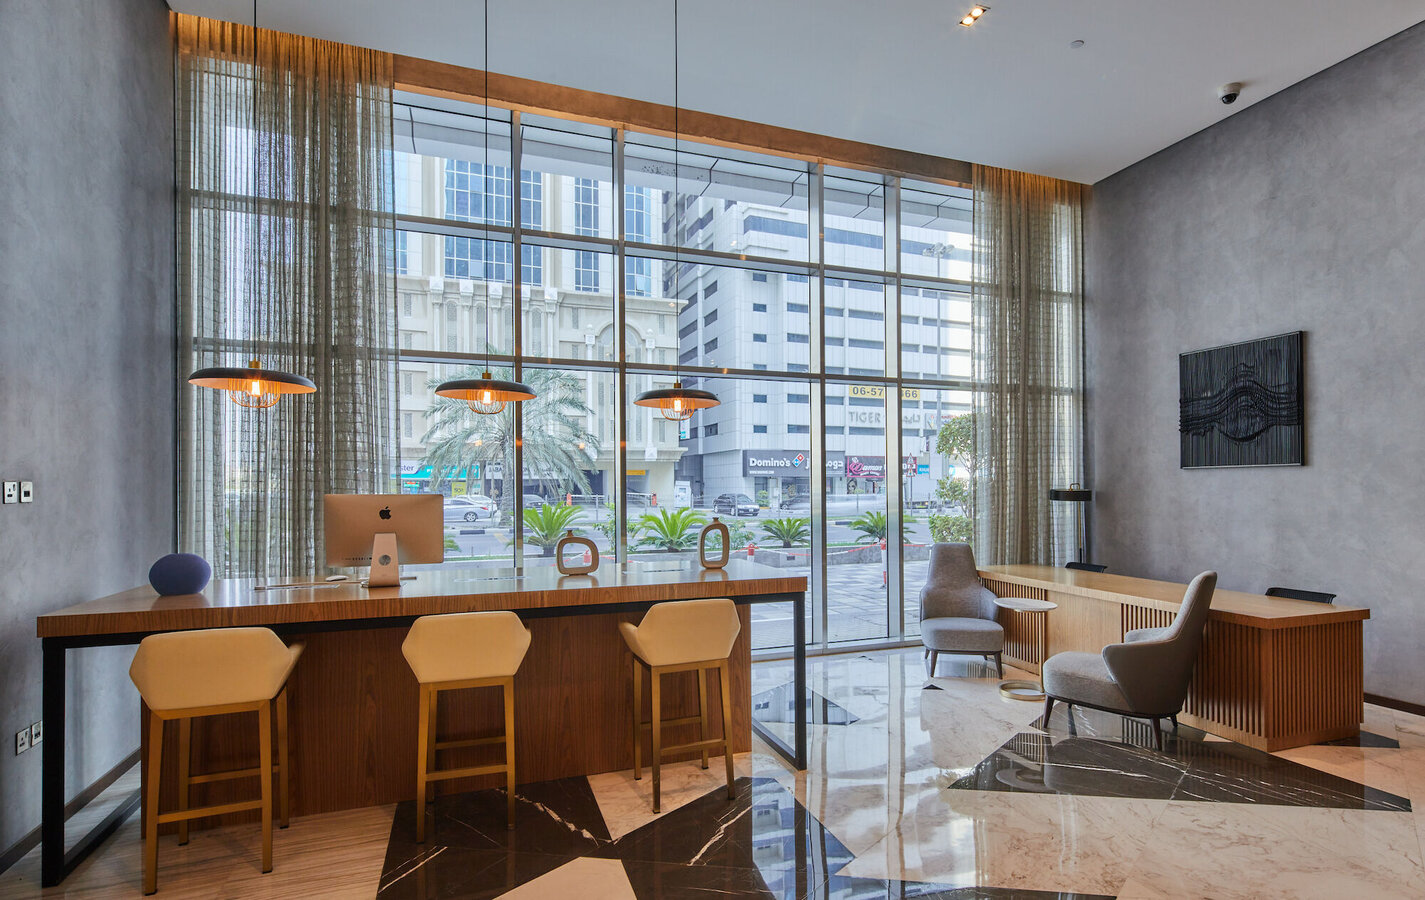 CW 50-SC Curtain Walls and CP 130 Sliding Systems - Apartmentcomplex Terhab Hotel & Apartment located in United Arab Emirates